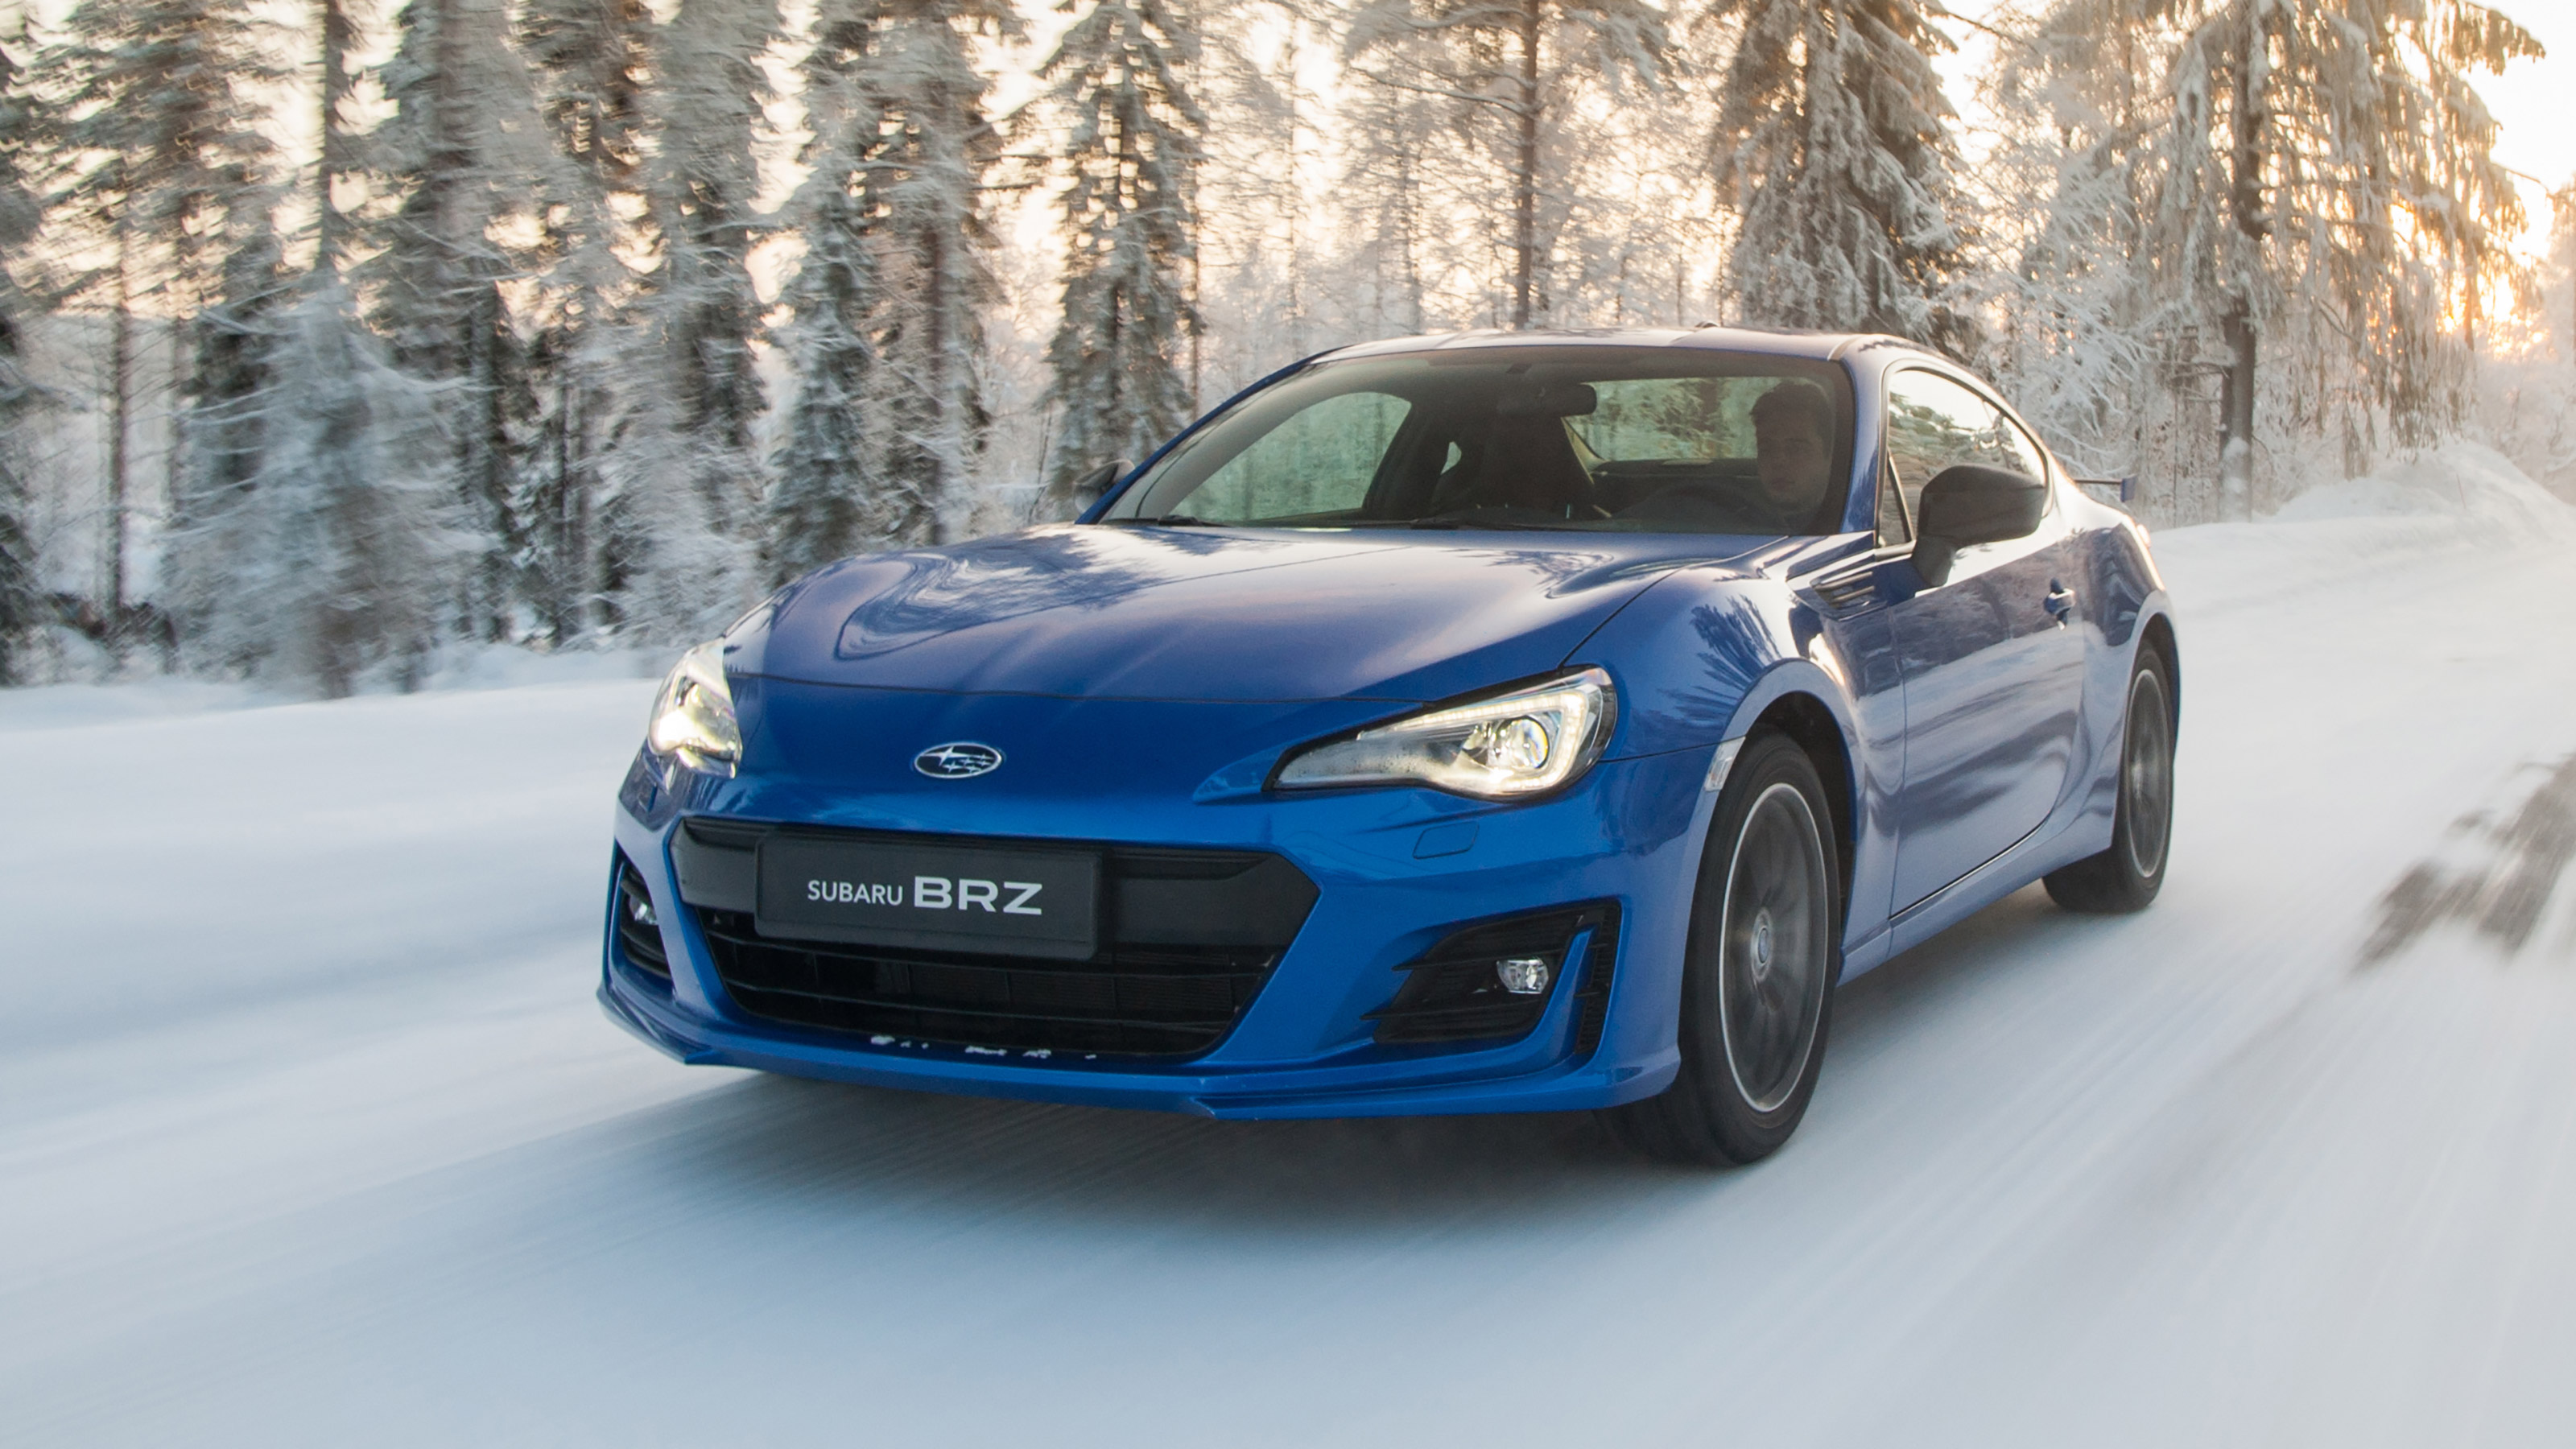 Subaru Brz Review Prices Specs And 0 60 Time Evo